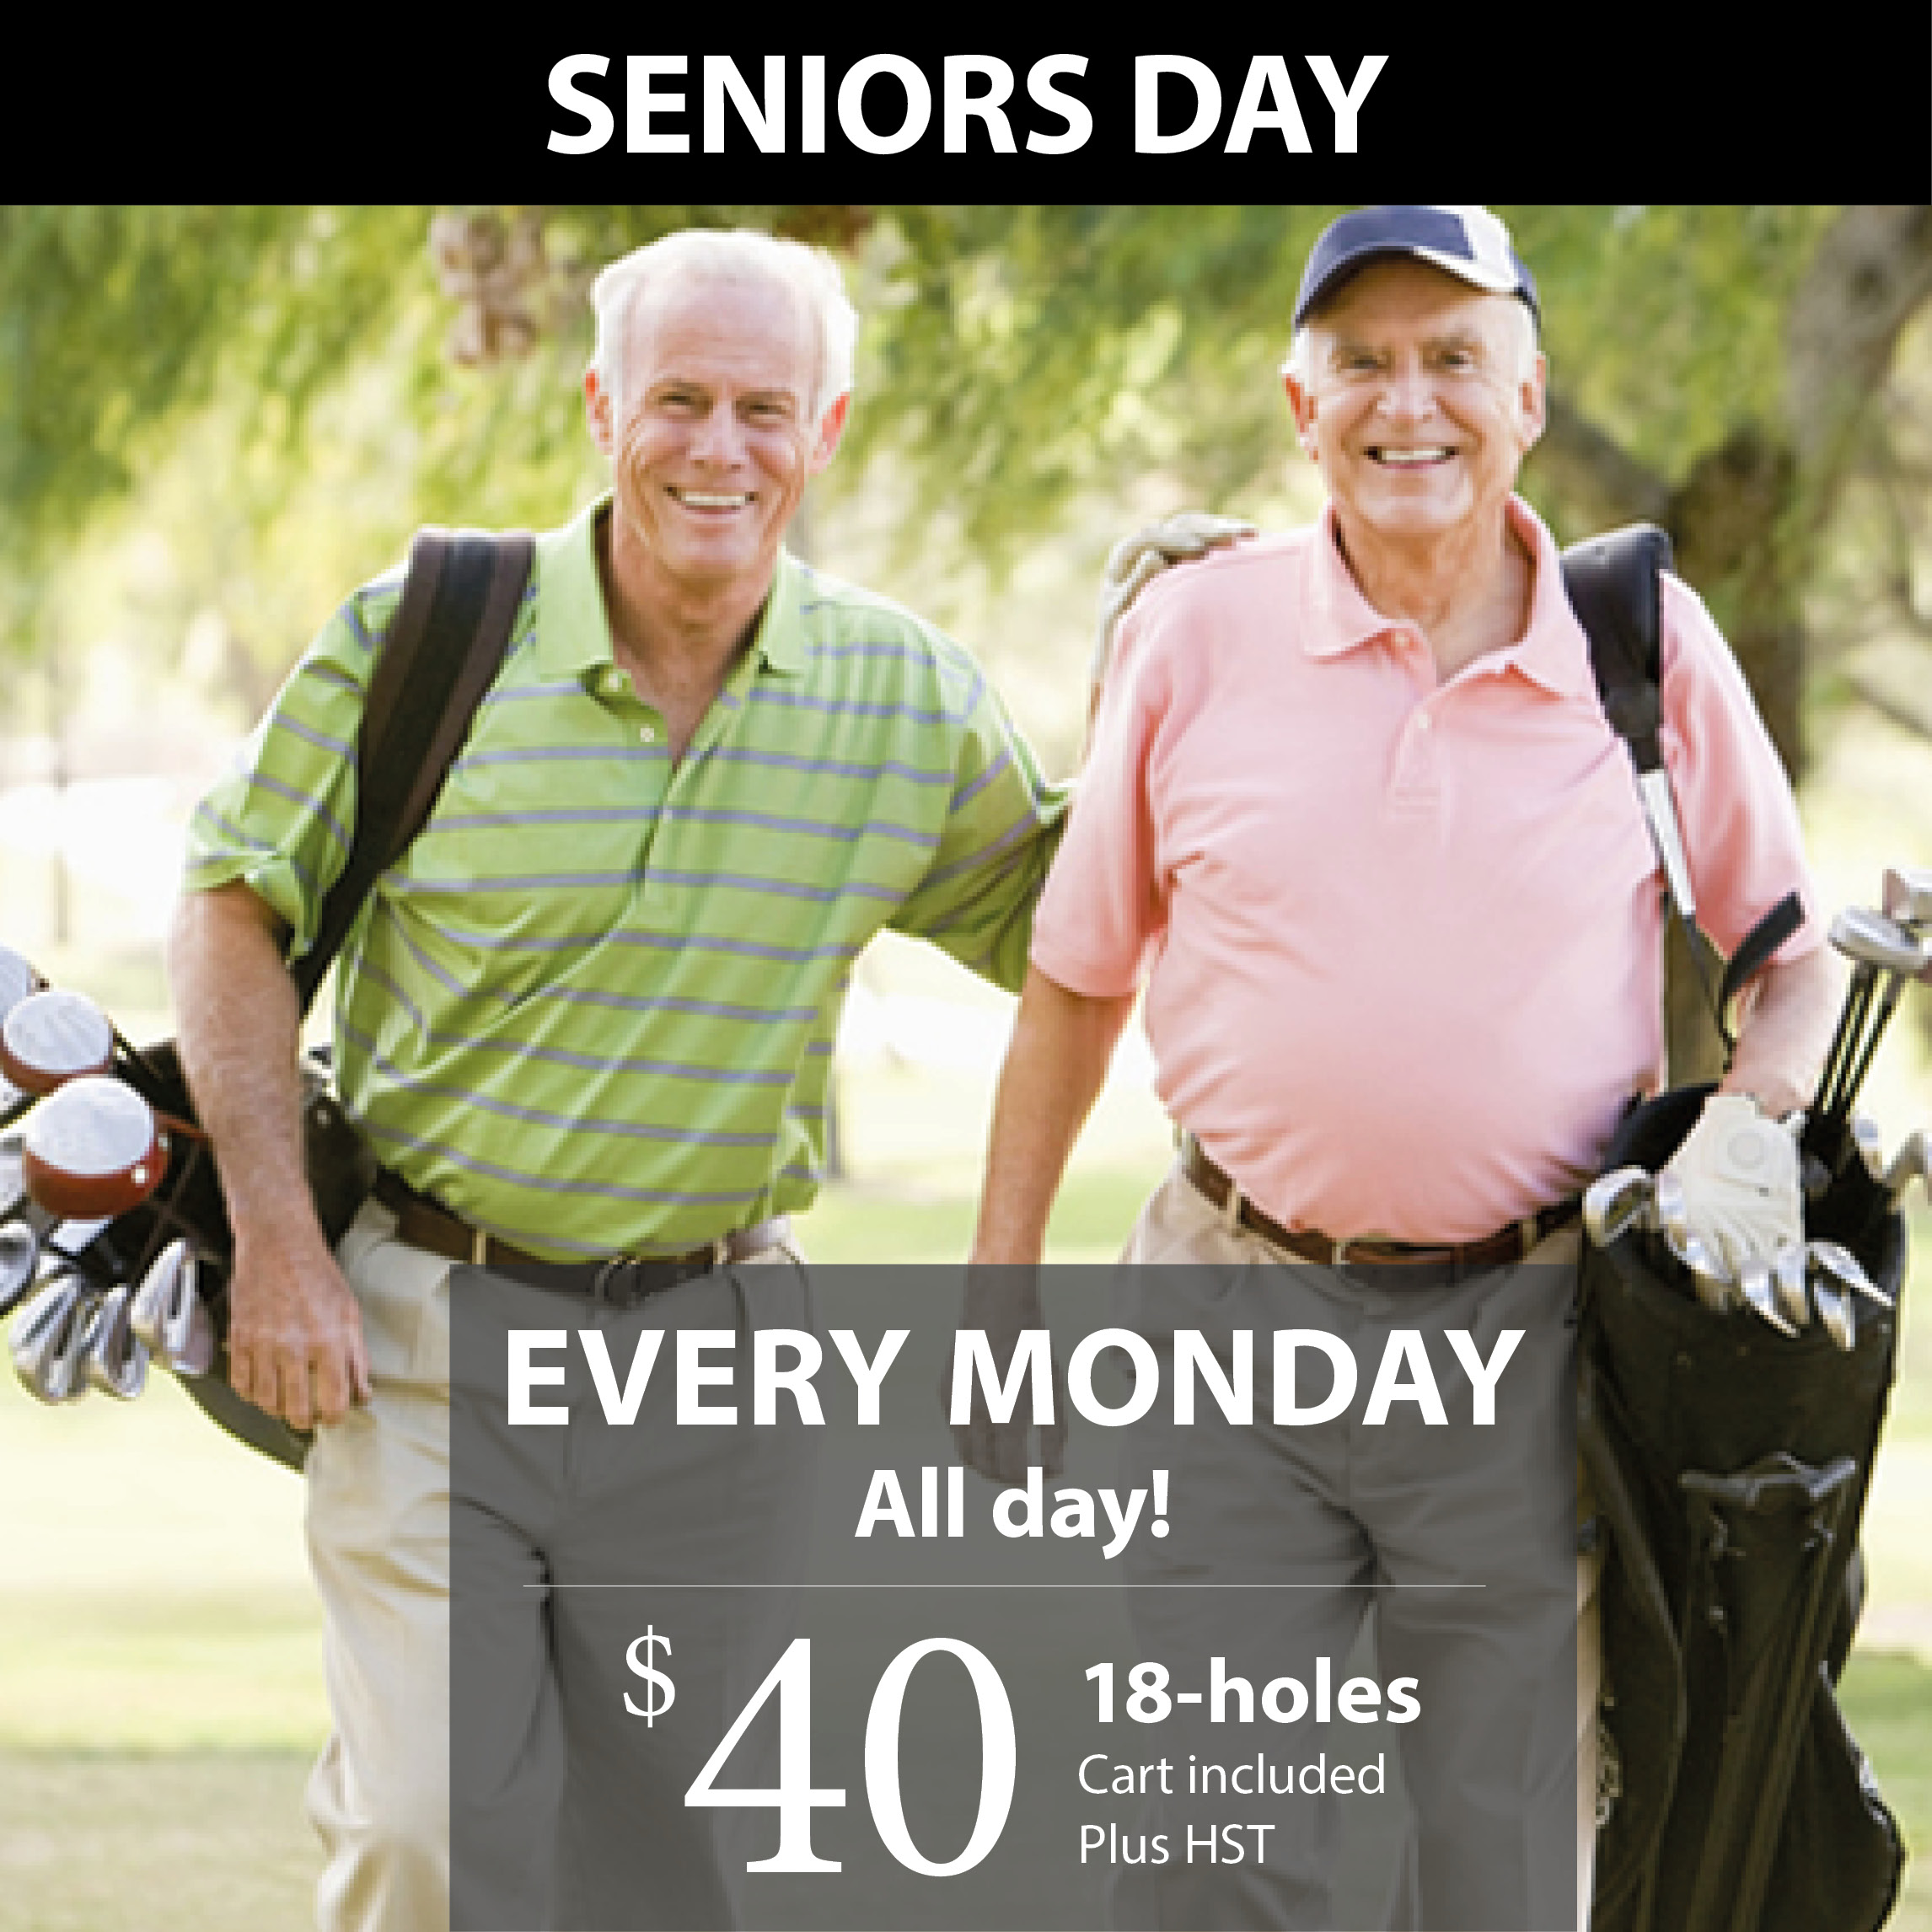 Enjoy Seniors Day every Monday, all season long!